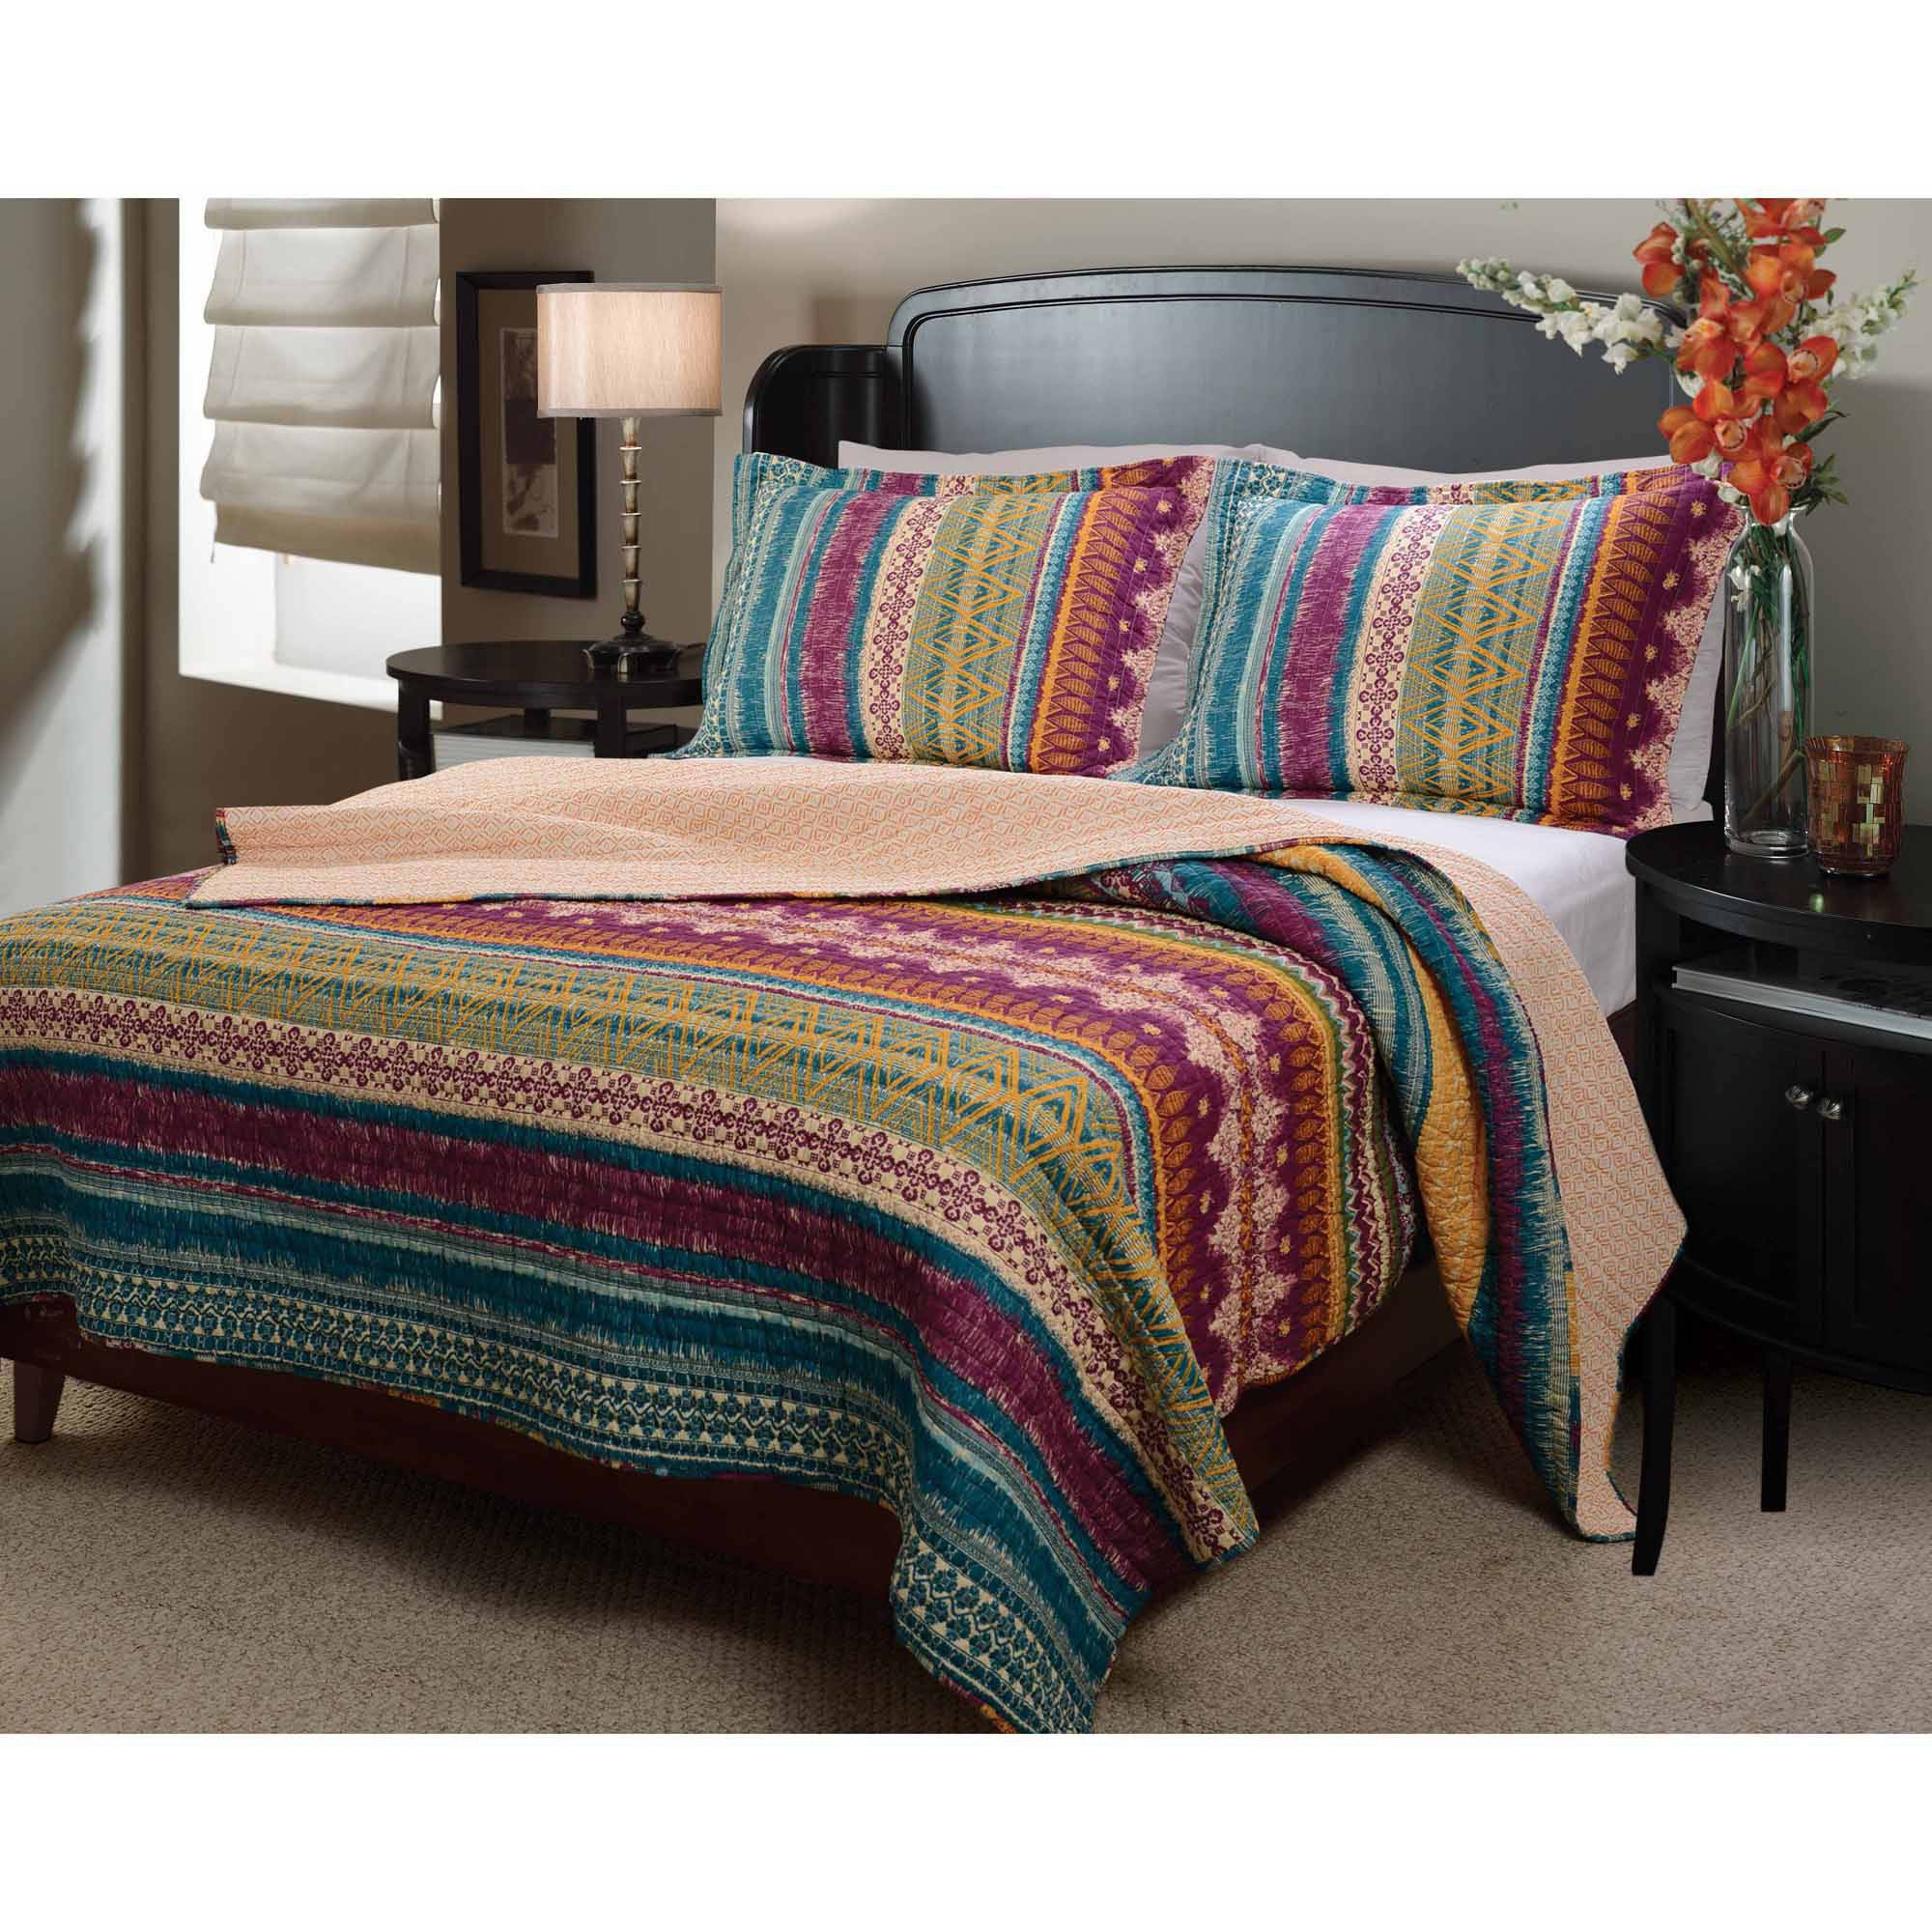 Global Trends Santa Fe Bedding Quilt Set - Walmart.com : bedding quilt sets - Adamdwight.com